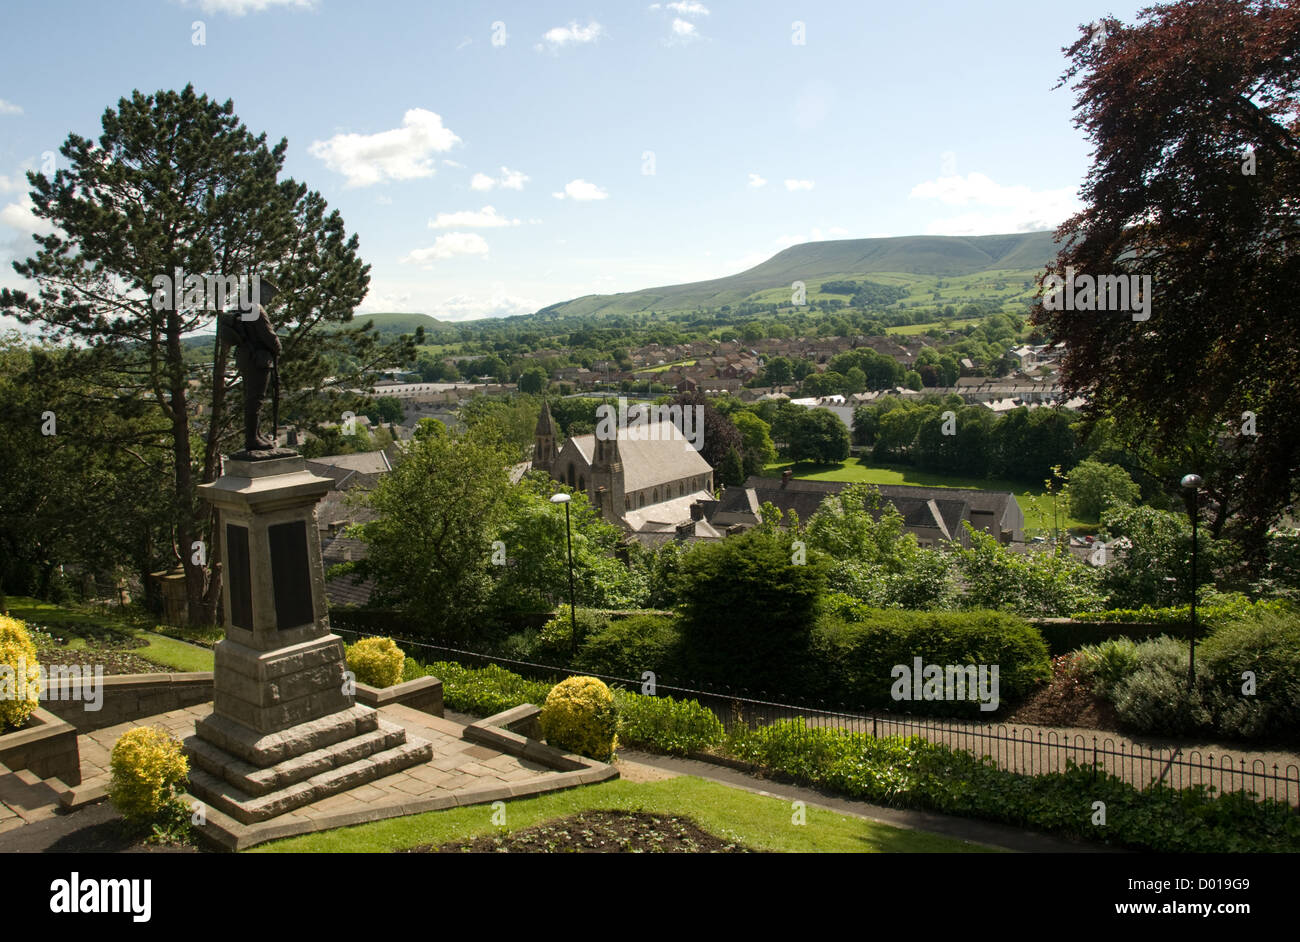 LANCASHIRE; CLITHEROE; VIEW OF PENDLE HILL FROM CLITHEROE CASTLE RAMPARTS WITH WAR MEMORIAL IN FOREGROUND - Stock Image